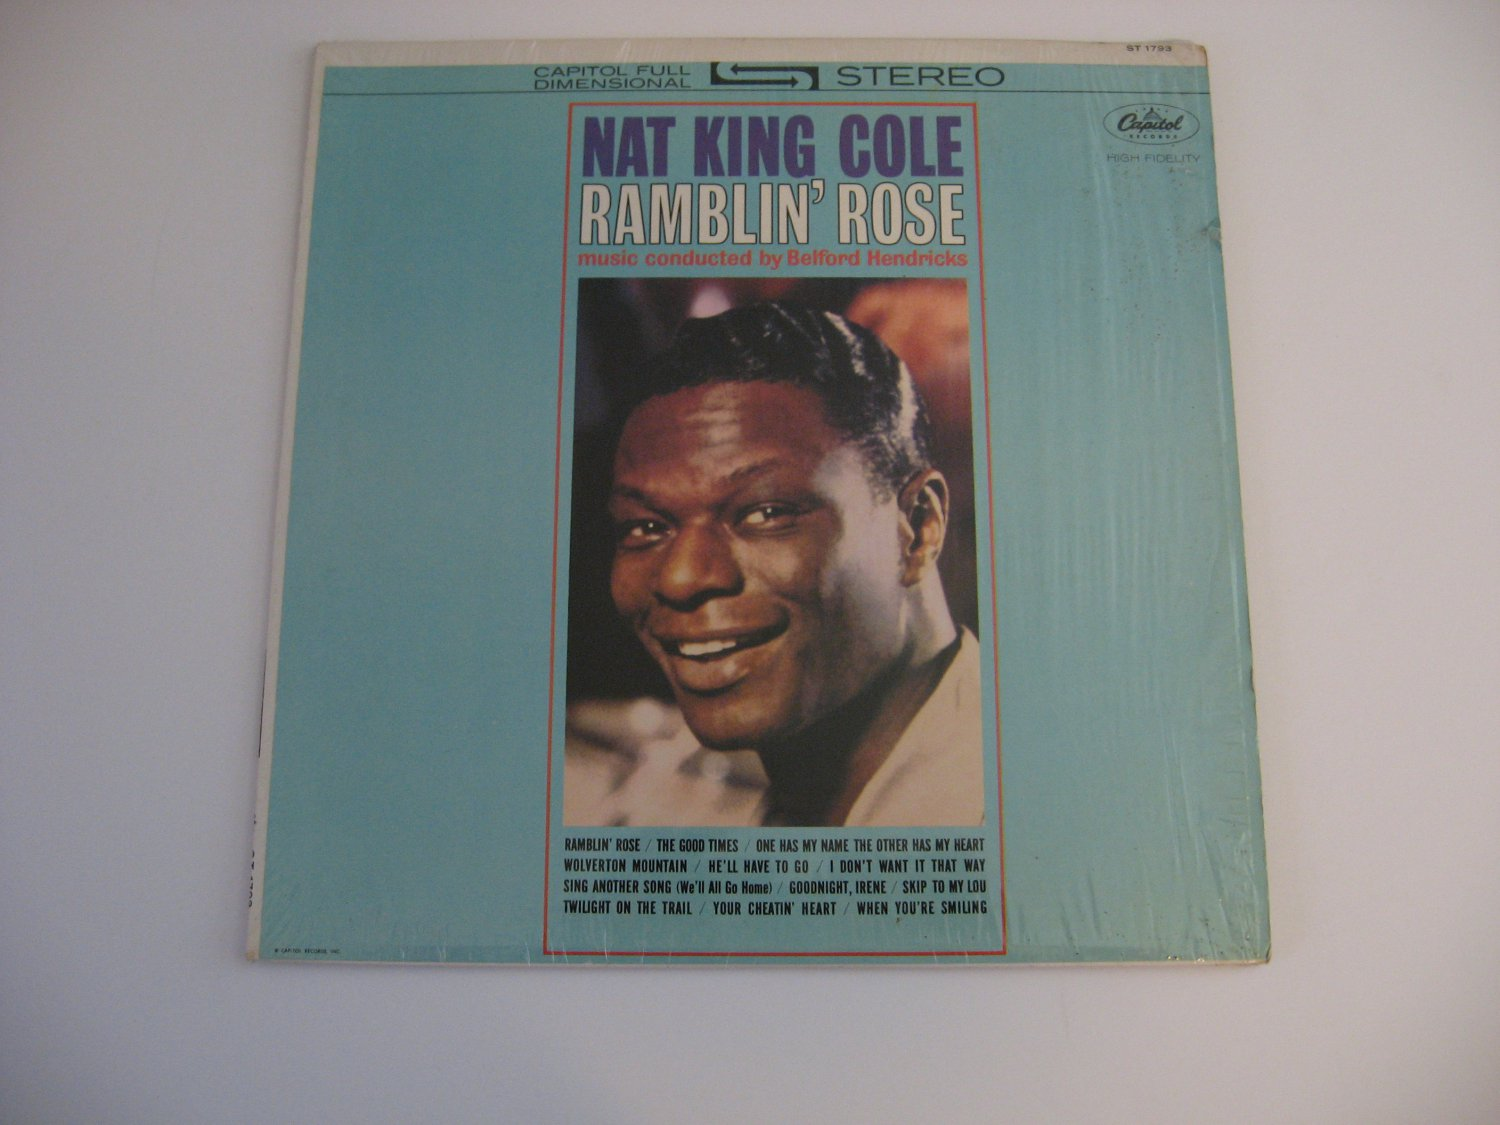 Nat King Cole - Ramblin' Rose - Stereo Version - 1962  (records)